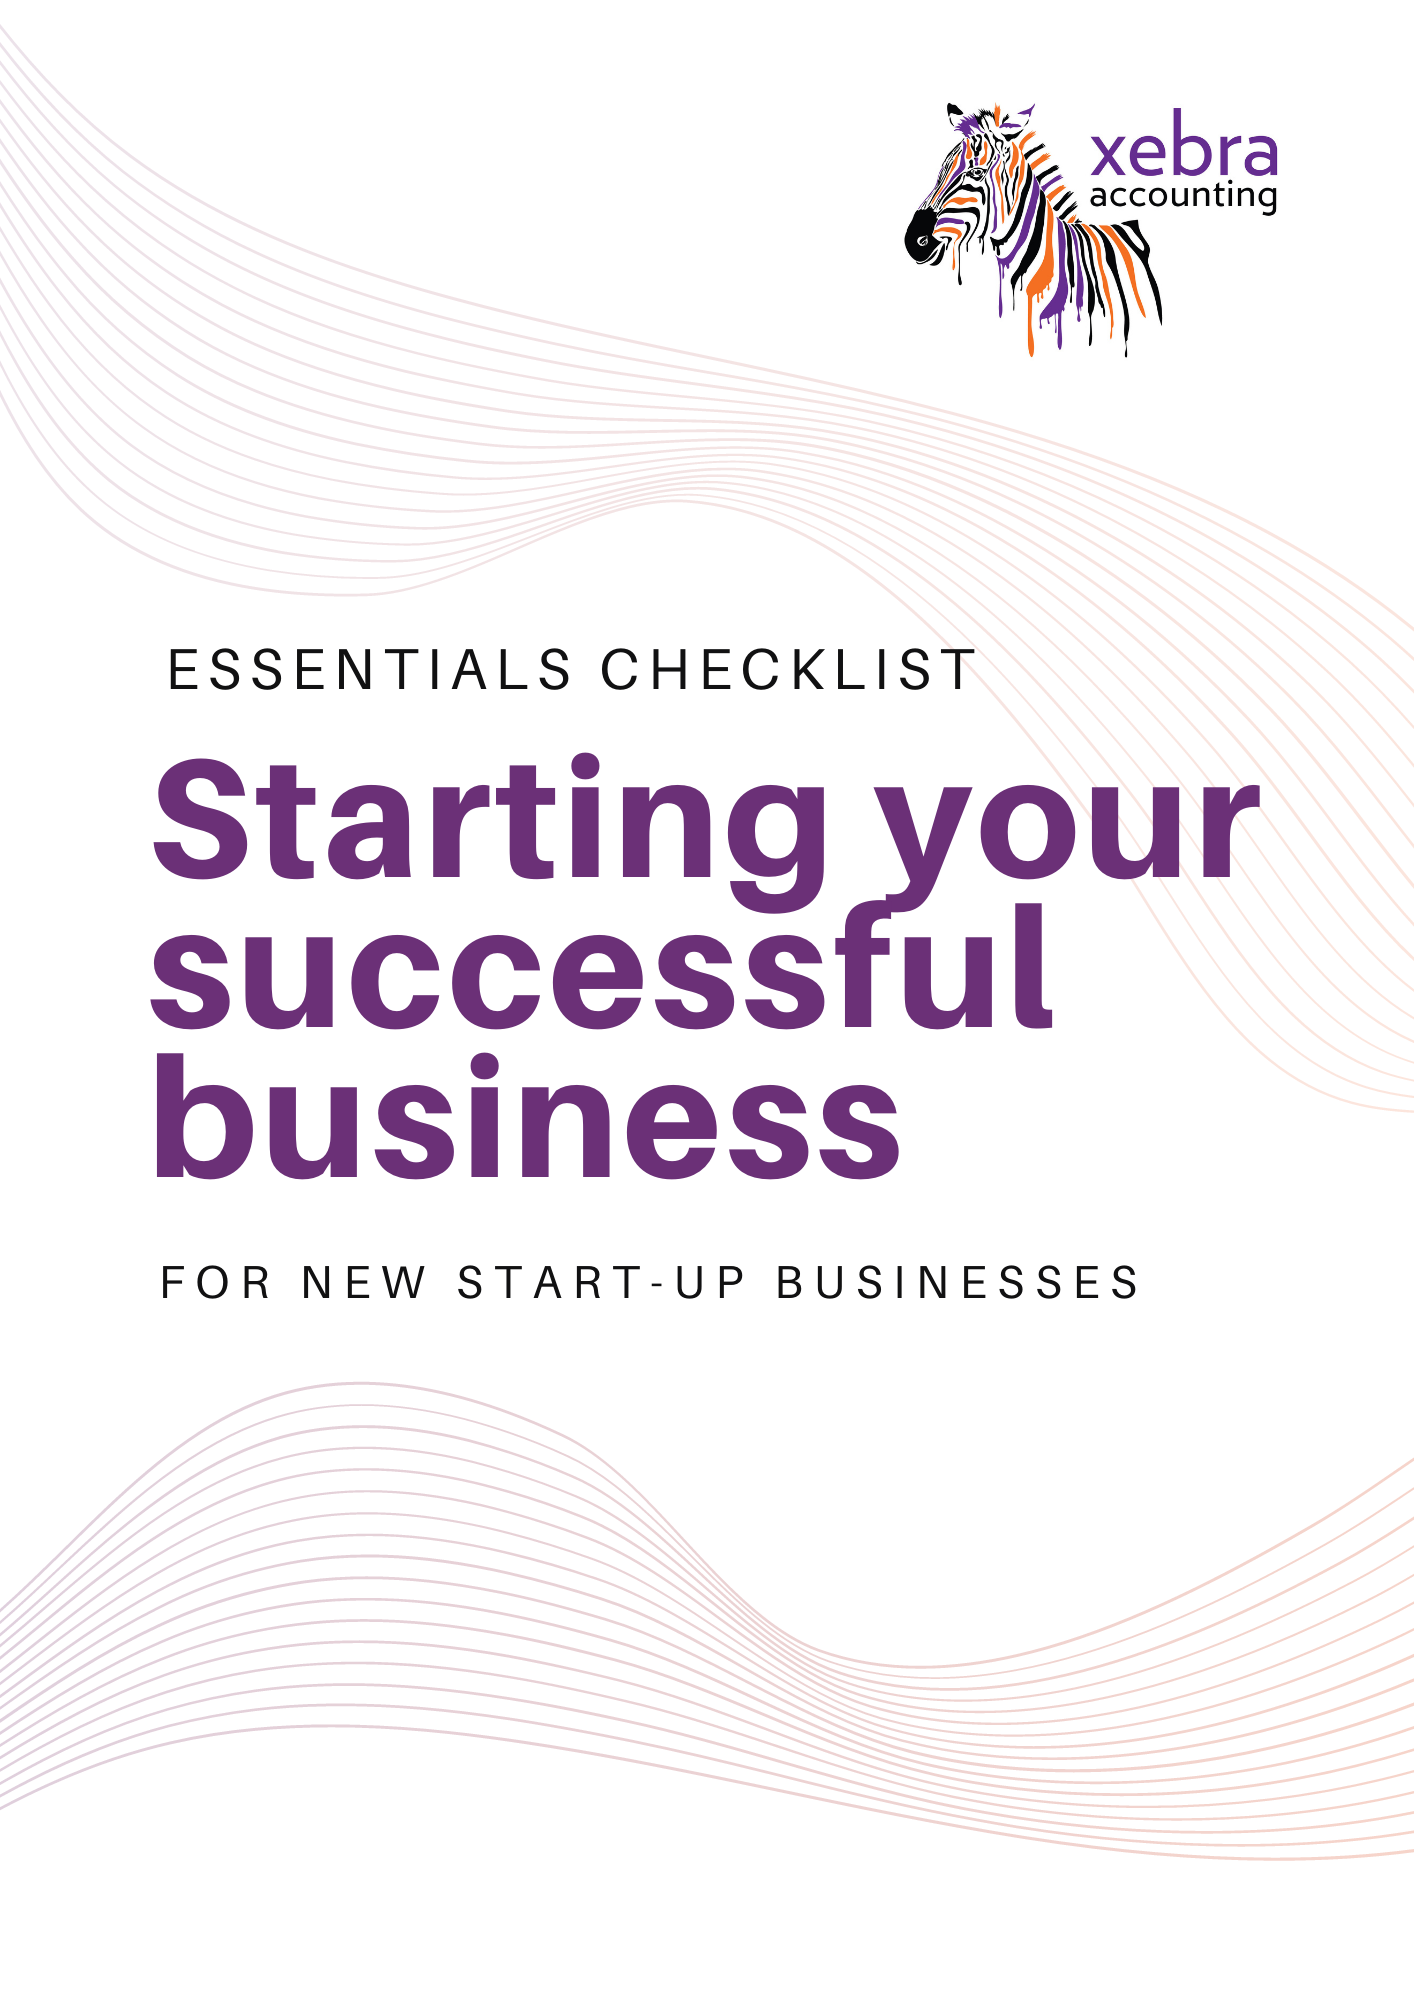 Starting your successful business checklist